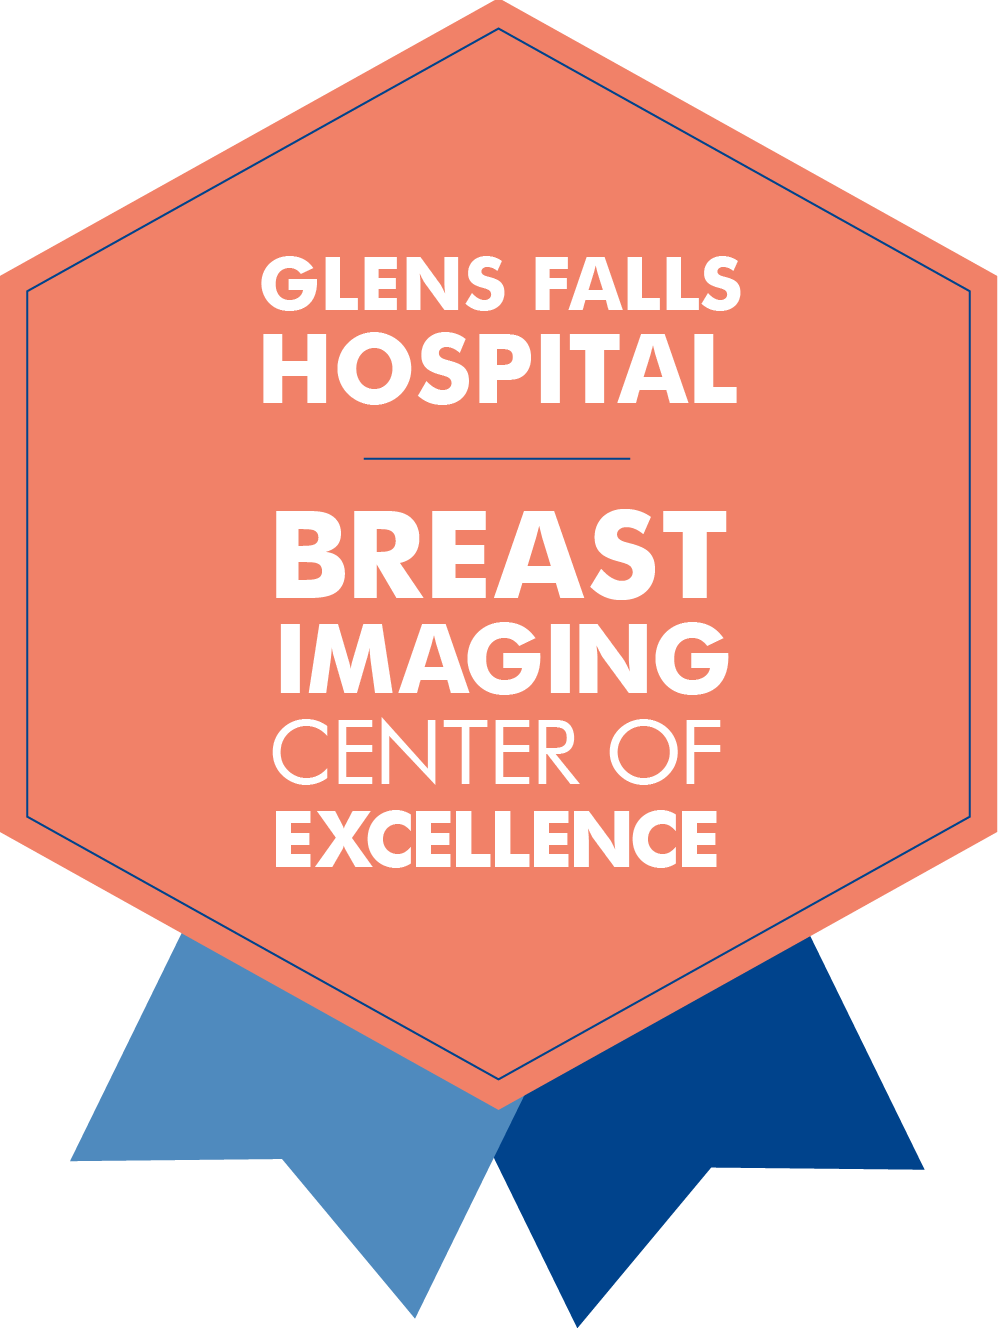 Glens Falls Hospital - Breast Image Center of Excellence